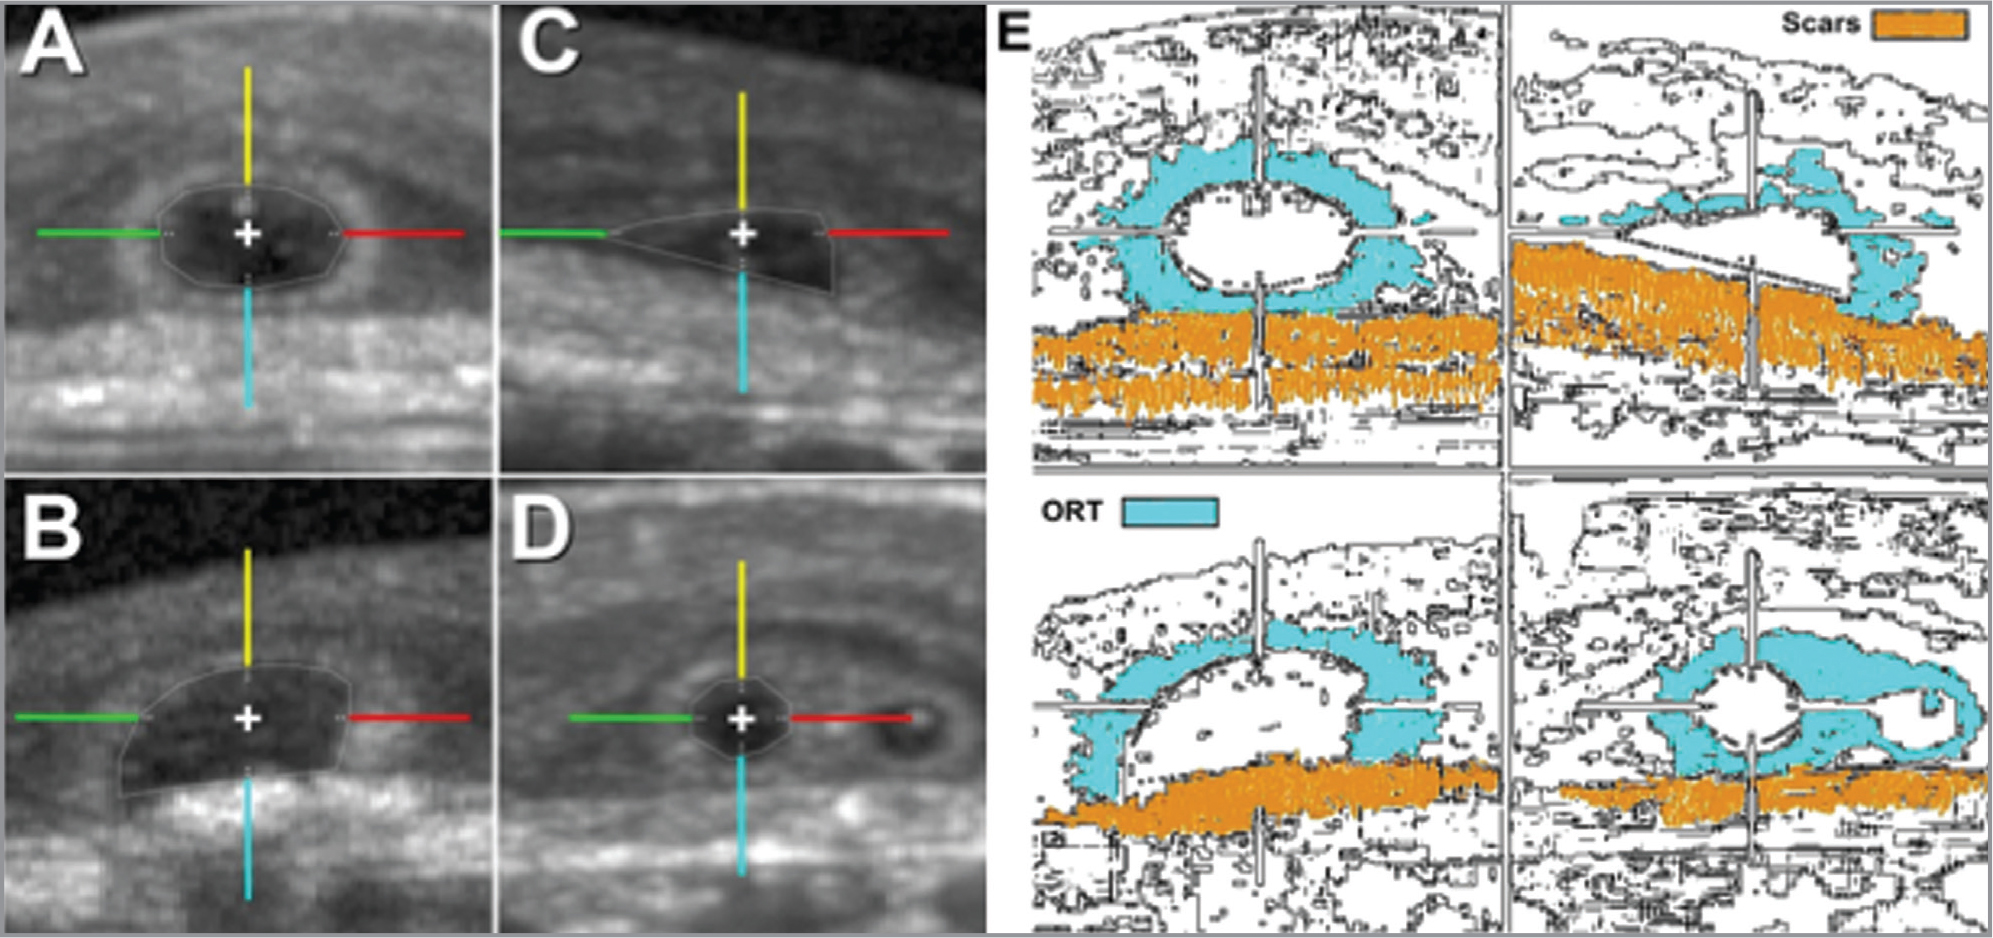 Outer retinal tubulation (ORT) types in cross-section for intensity analysis. (A) Closed ORT, (B) open ORT, (C) forming ORT, and (D) branching ORT. Hyperreflective ORT bands were sampled at 0° (red), 90° (yellow), 180° (green), and 270° (cyan). Raw (linear) spectral-domain optical coherence tomography intensity (ranging from 0 to 1 in a 32-bit image) by ORT type and angle was sampled at 5-μm steps from the inner aspect of ORT band along the colored lines. Lines of the cross in the centroid of ORT cross-sections are 20 μm long. (E) Schematic representation of different shapes of ORTs. Pictures modified from Litts et al.15 highlighting the ORTs structure and scars.